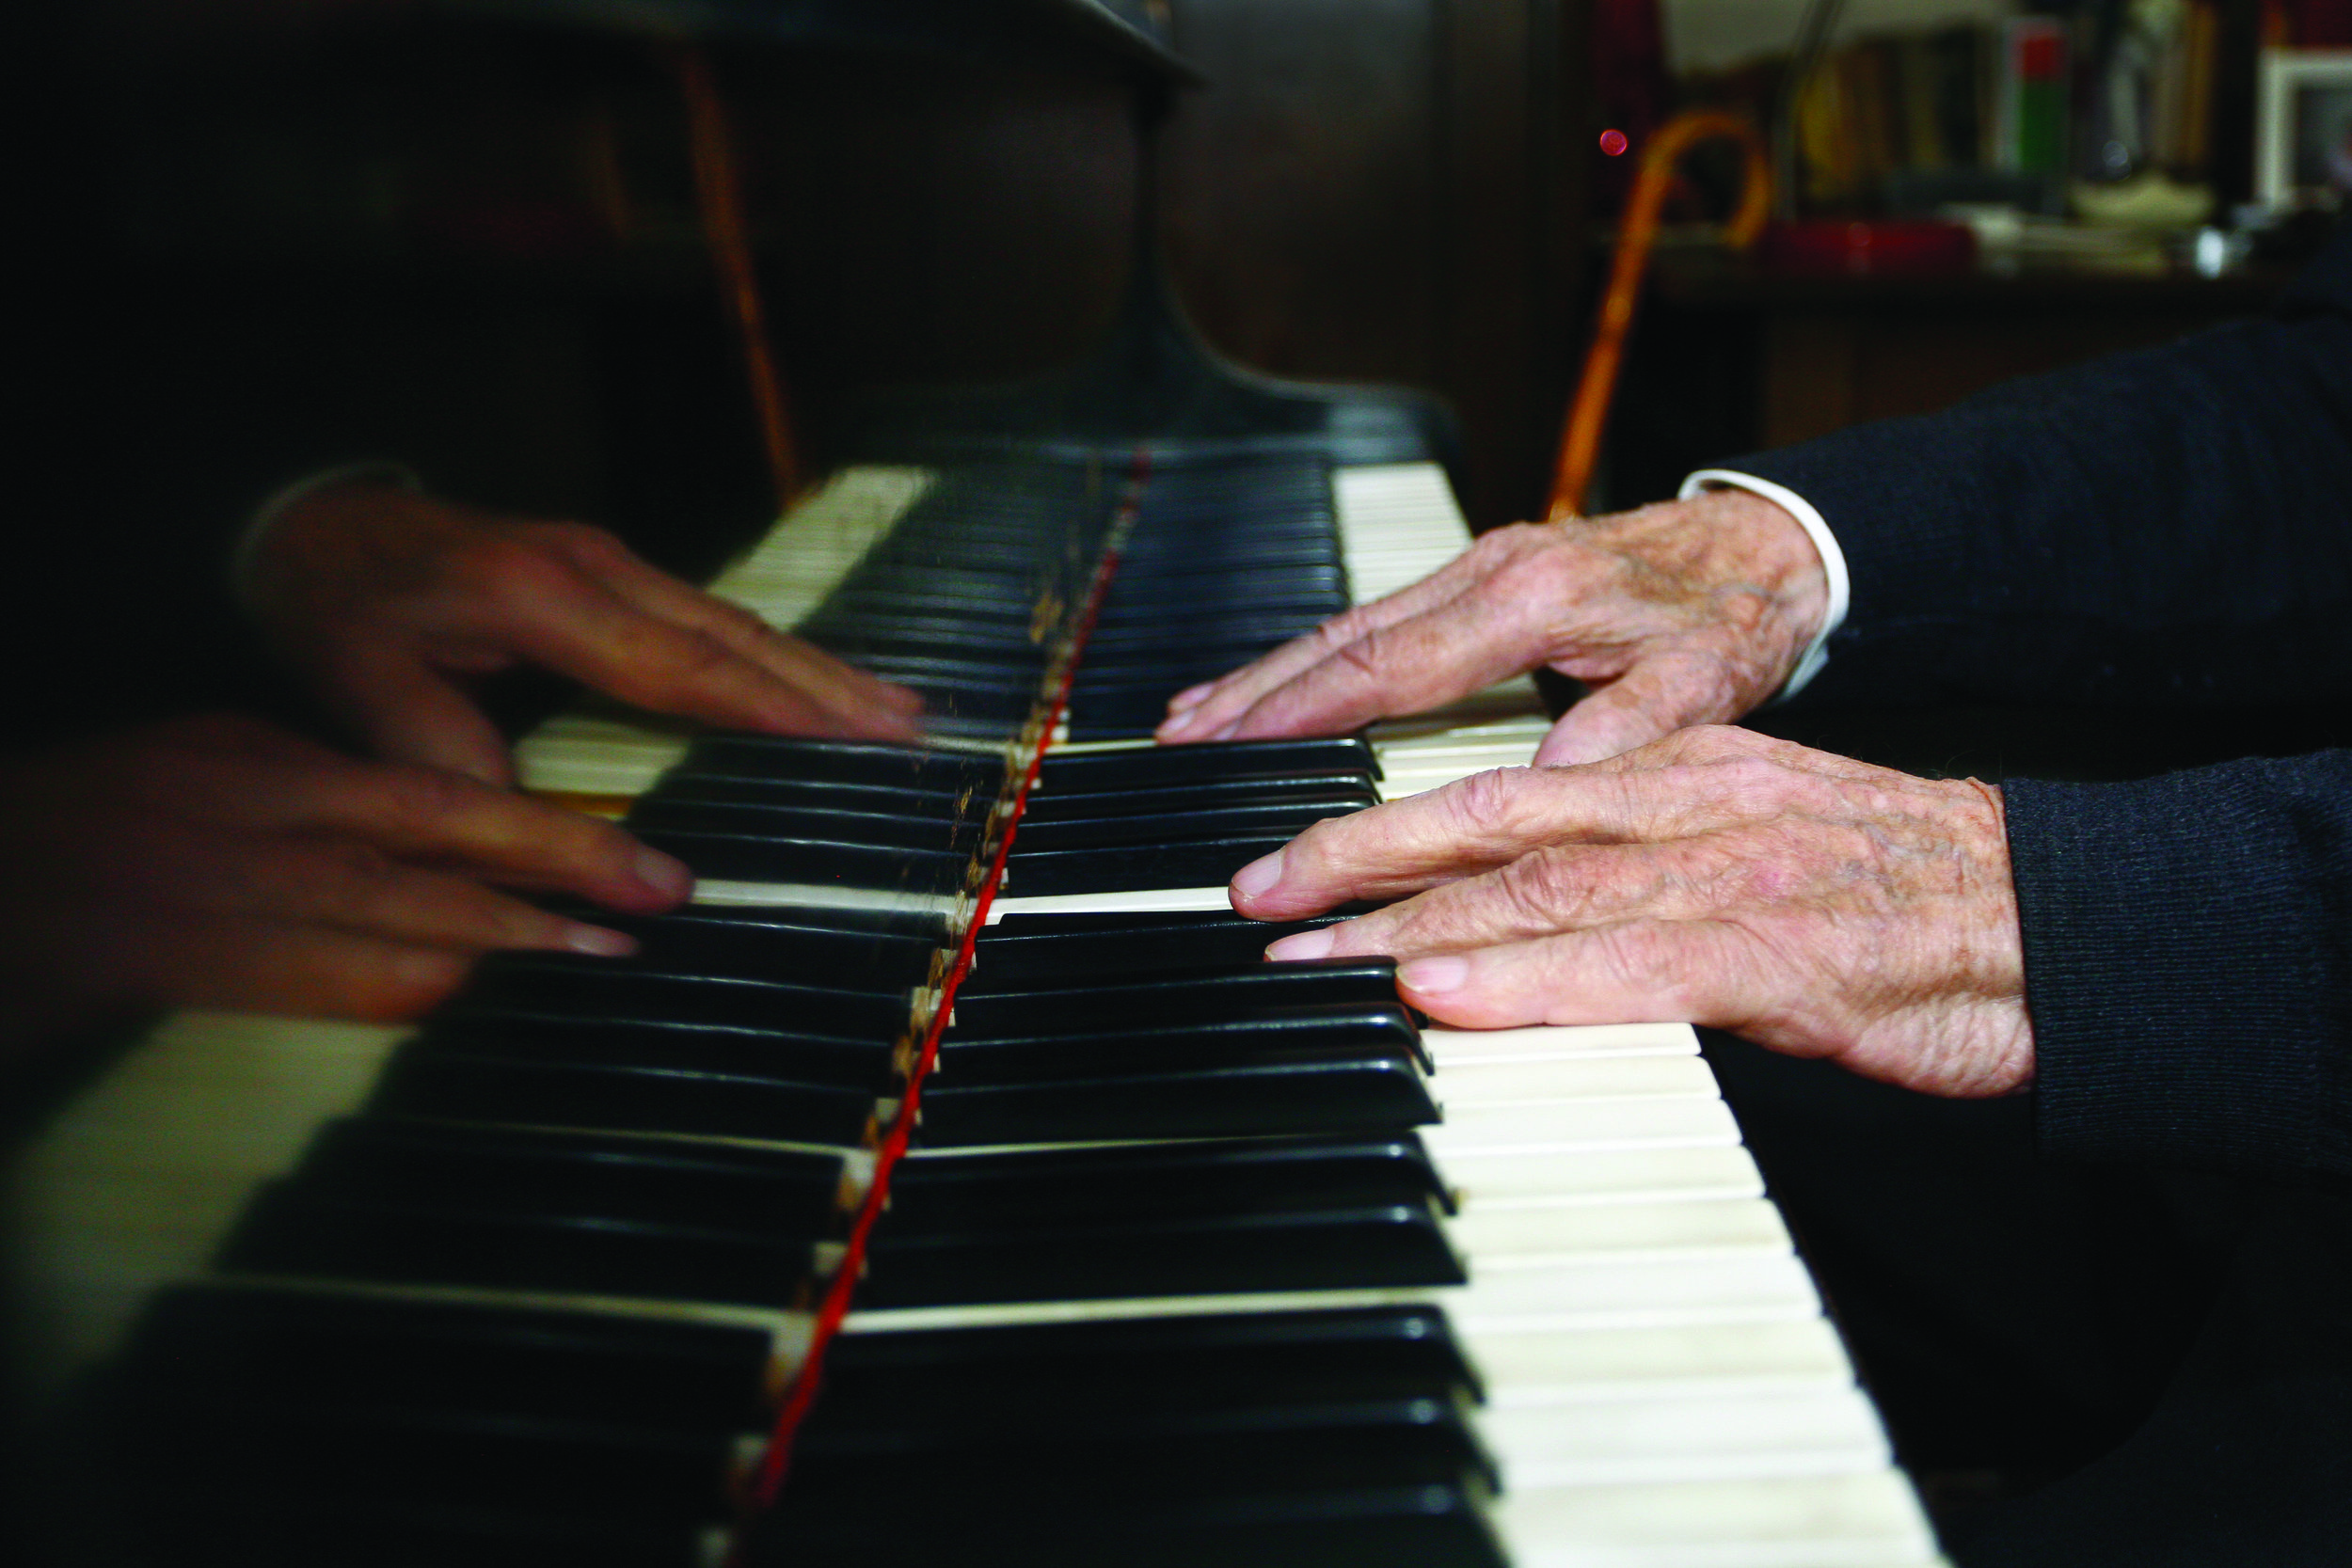 Morning Melodies - Free EventPh: 03 6430 5850